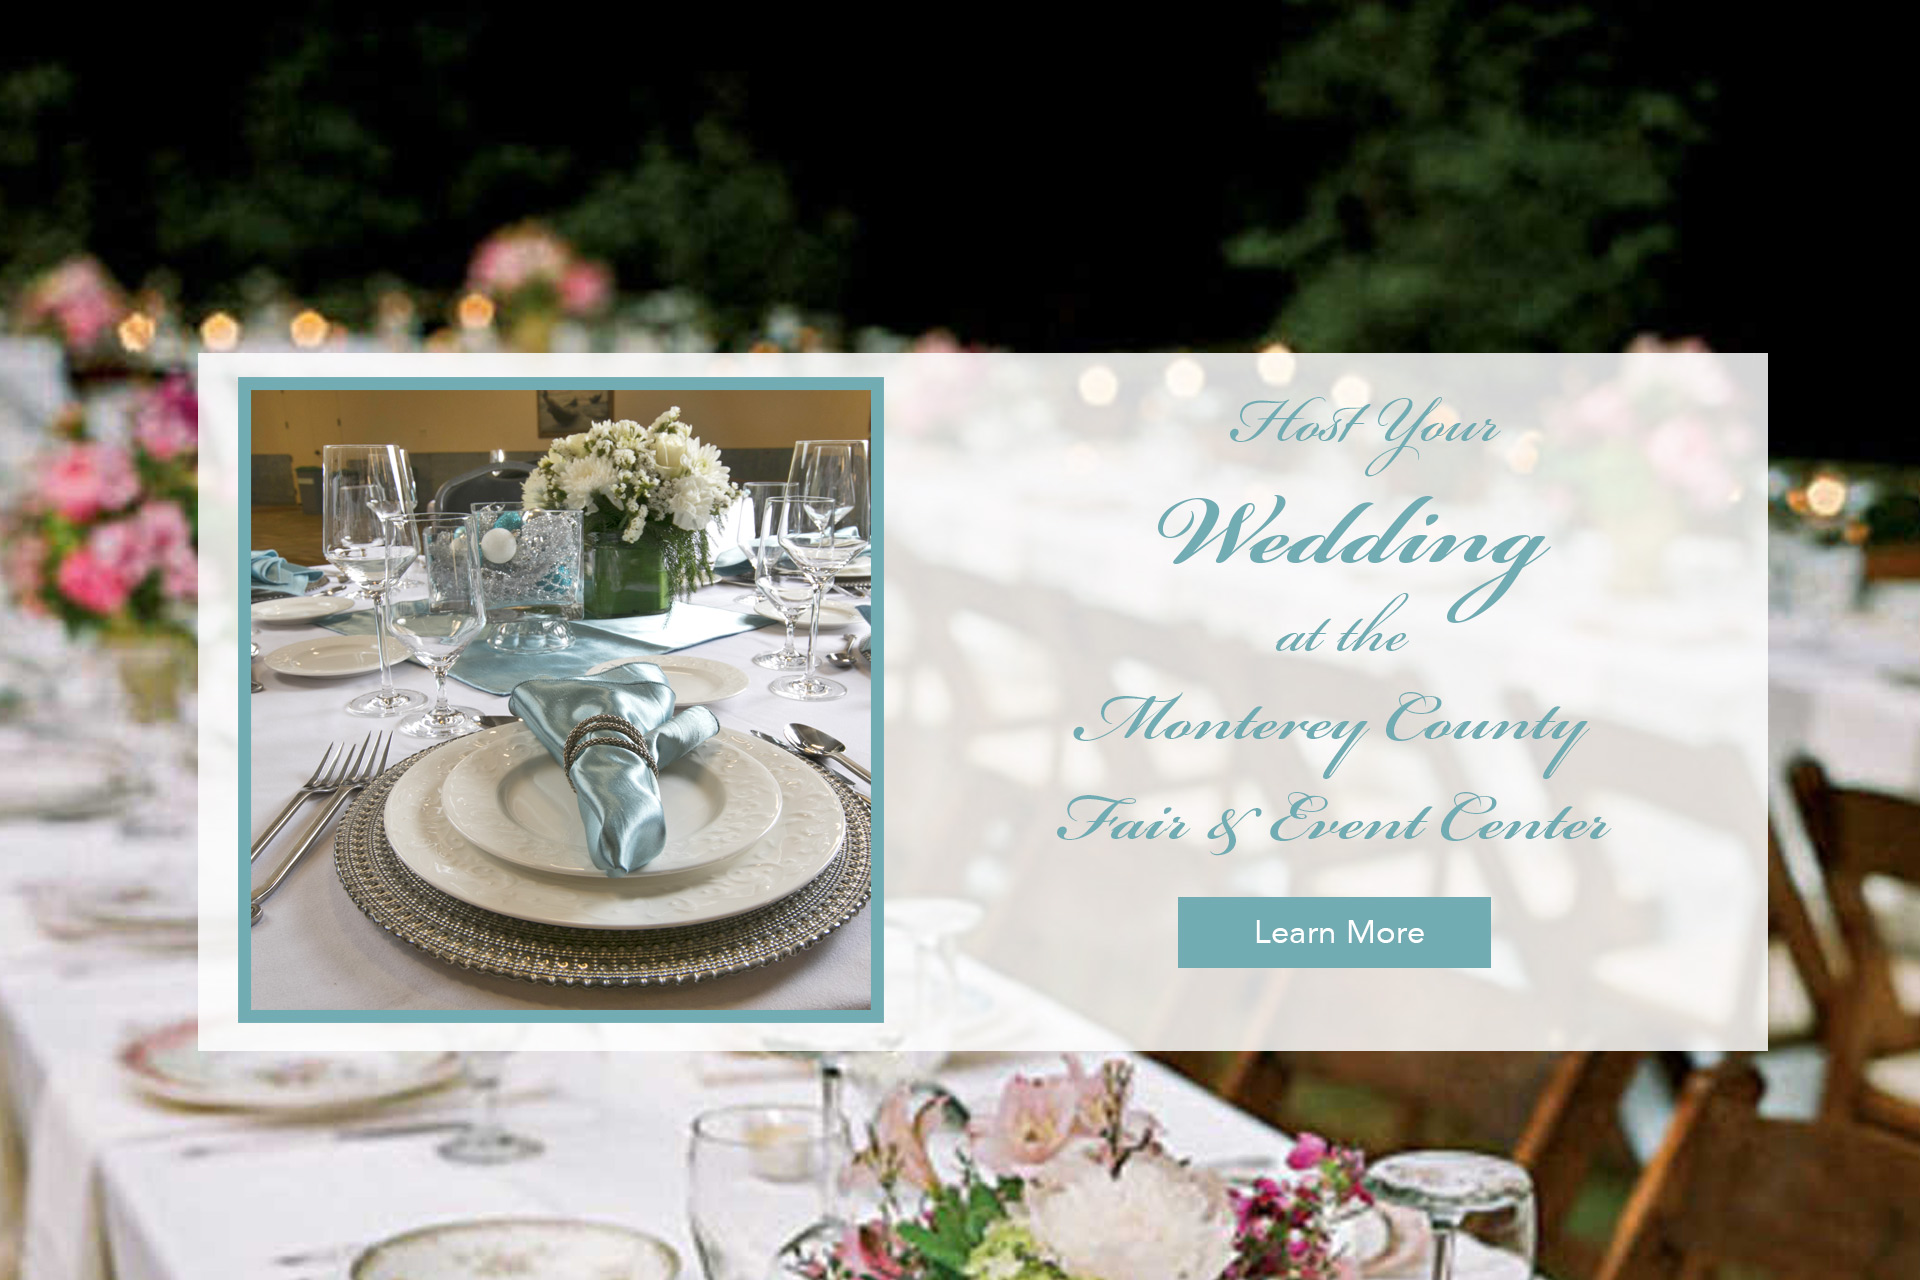 Weddings at the Monterey County Fair & Event Center